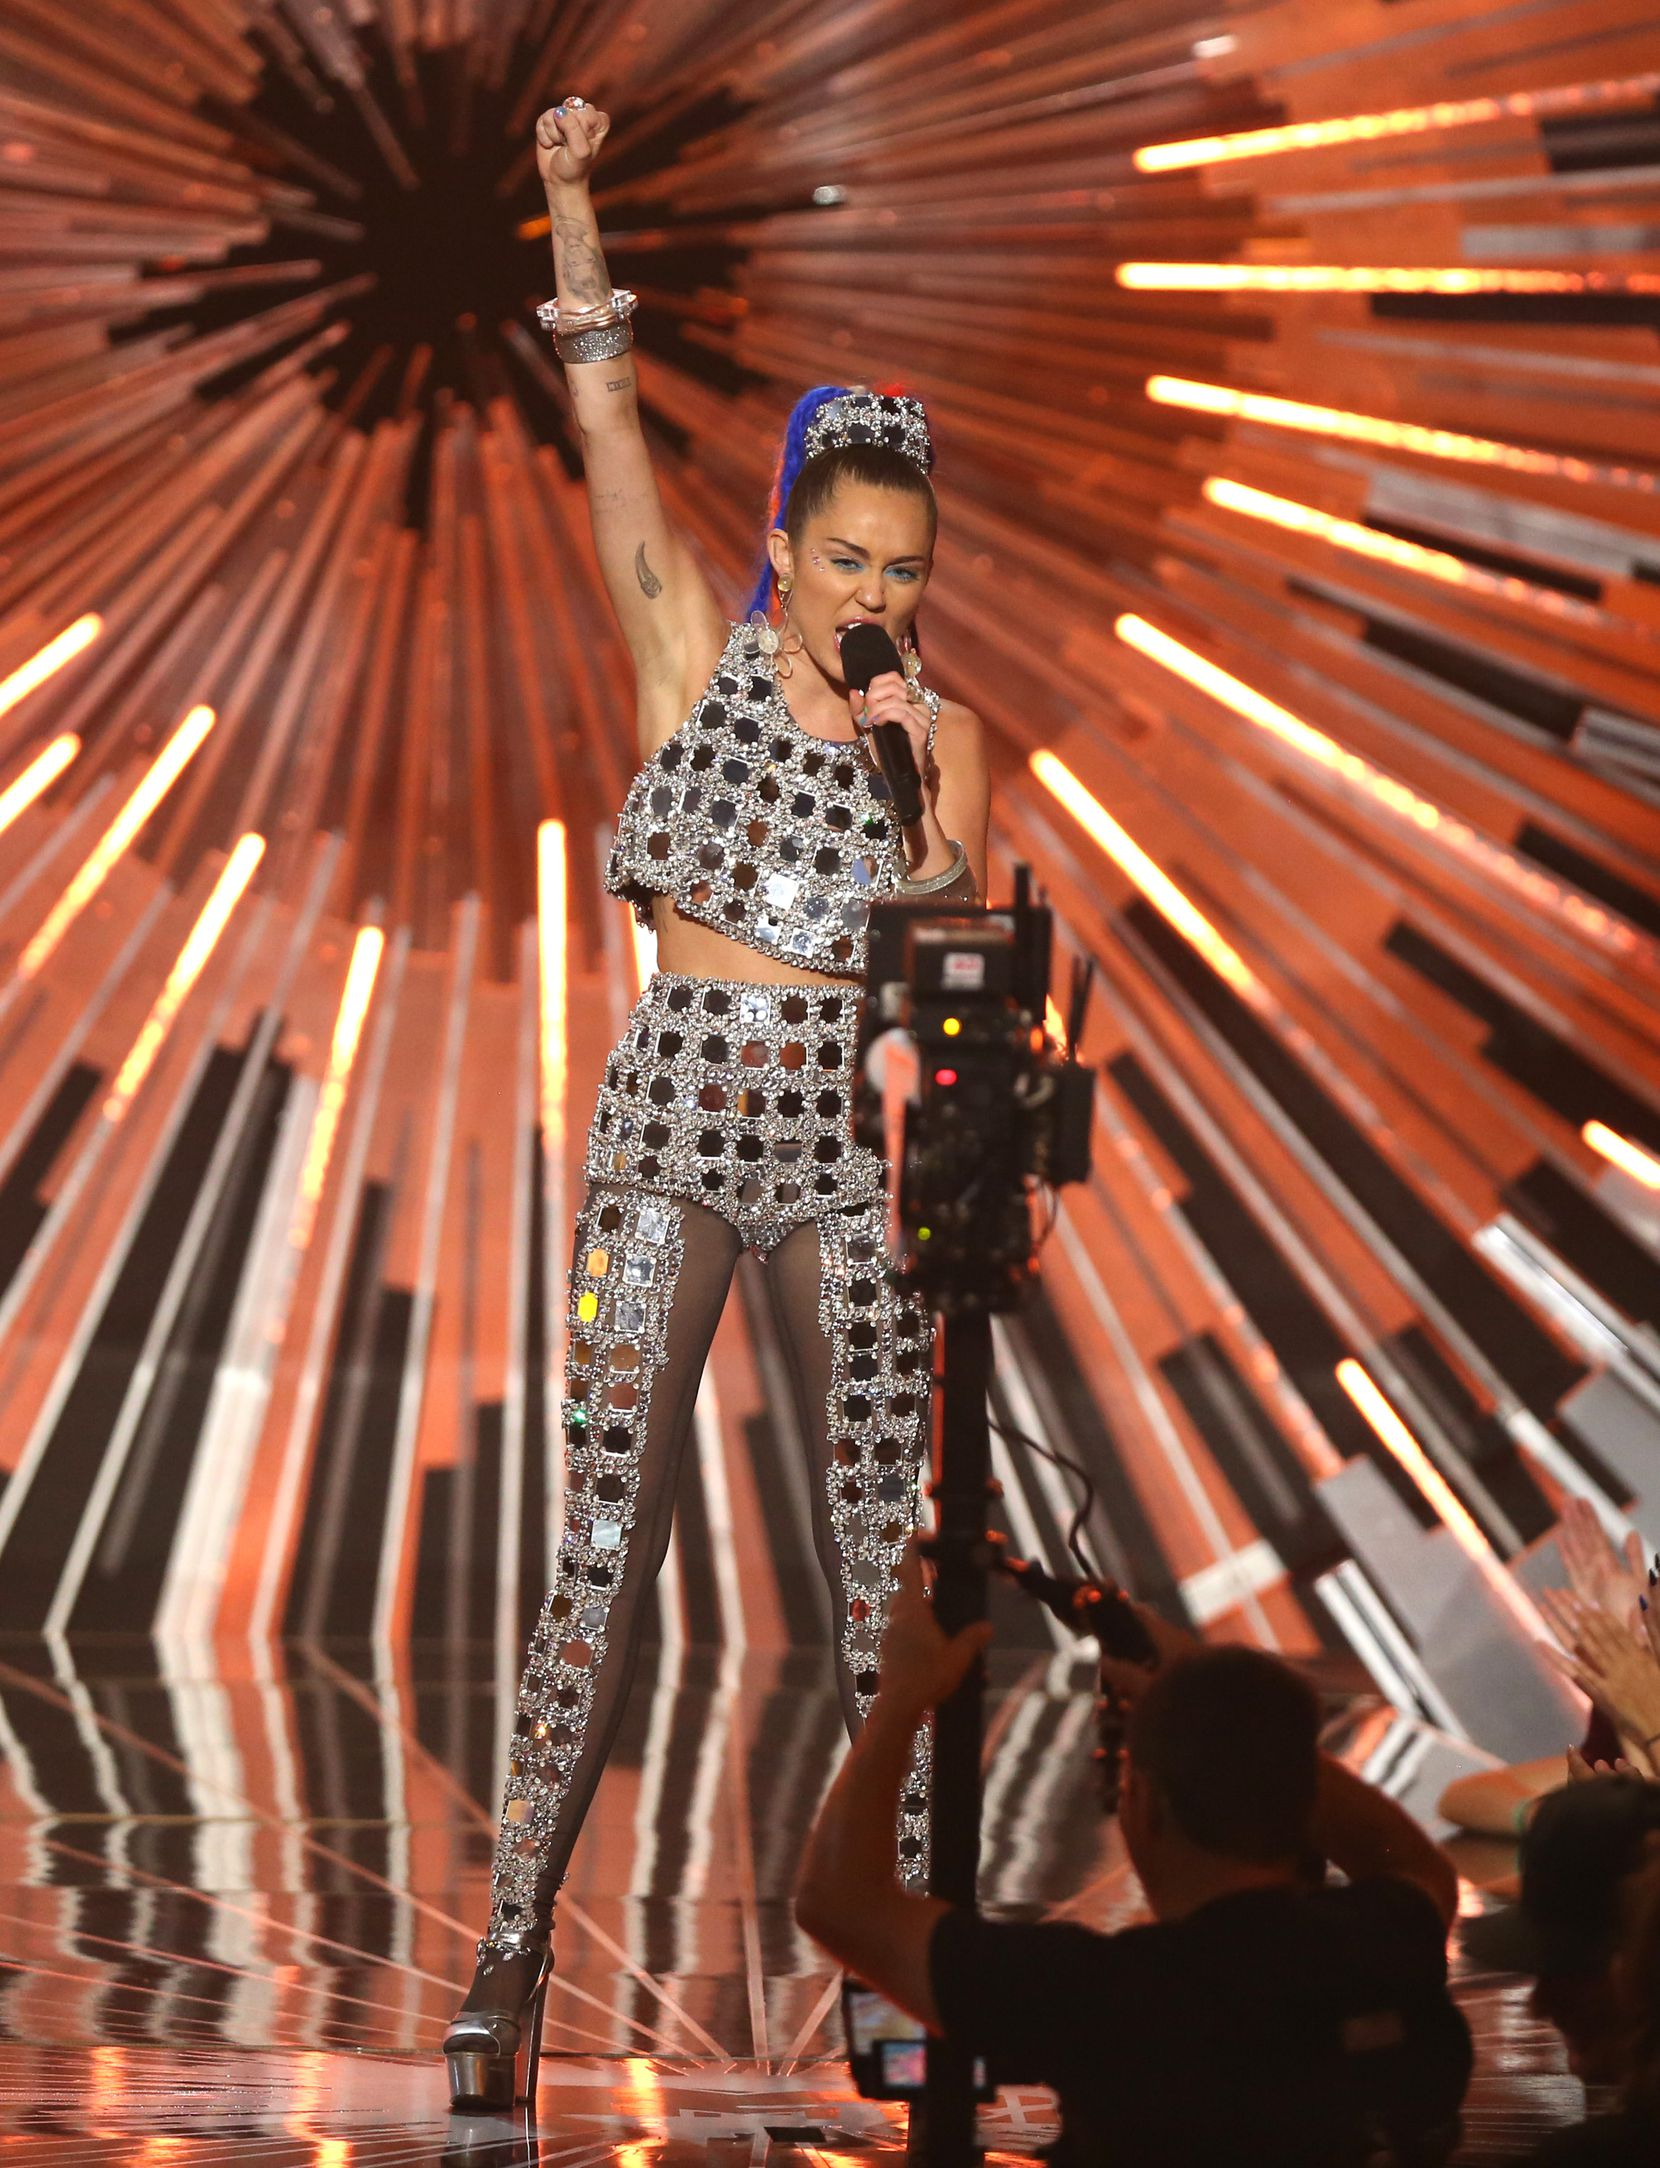 Host Miley Cyrus speaks at the MTV Video Music Awards at the Microsoft Theater on Sunday, Aug. 30, 2015, in Los Angeles.